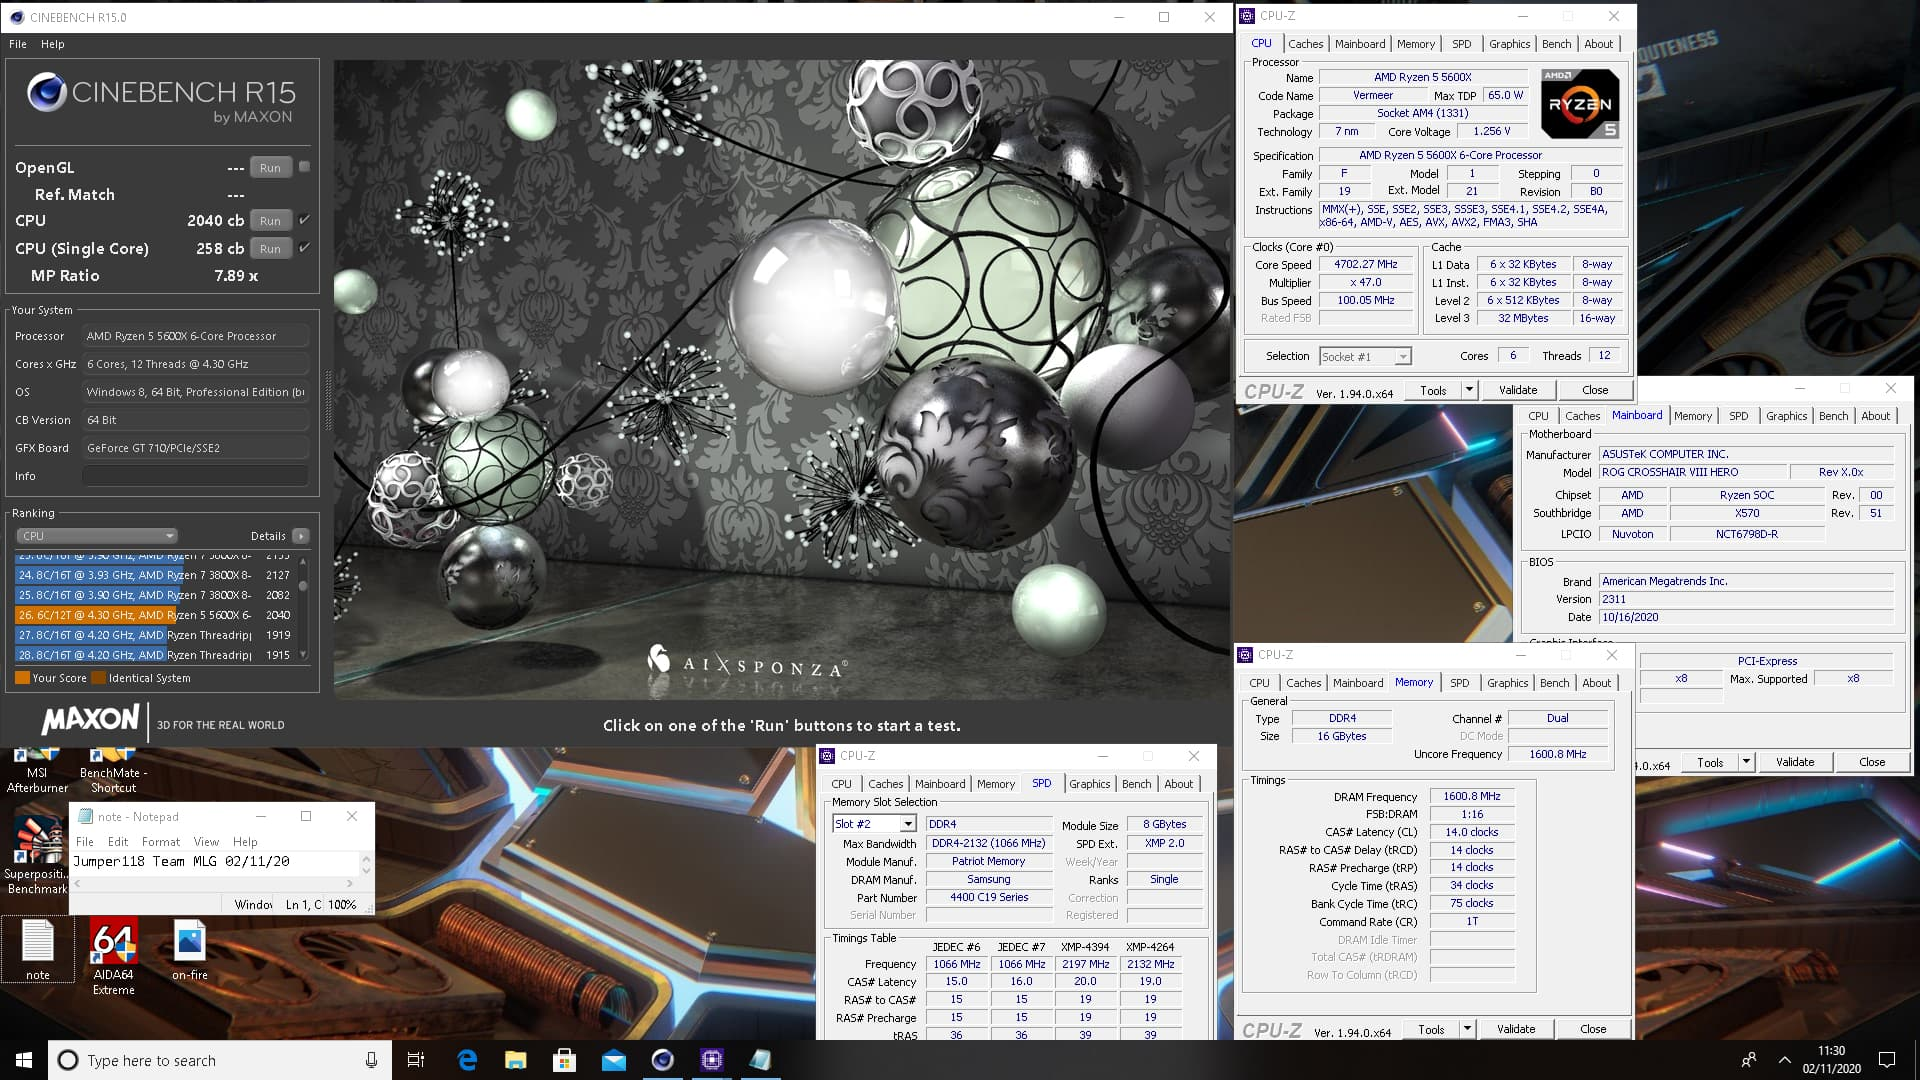 Cinebench R15 - Ryzen 5 5600X@4.7GHz シングル258cb マルチ2040cb